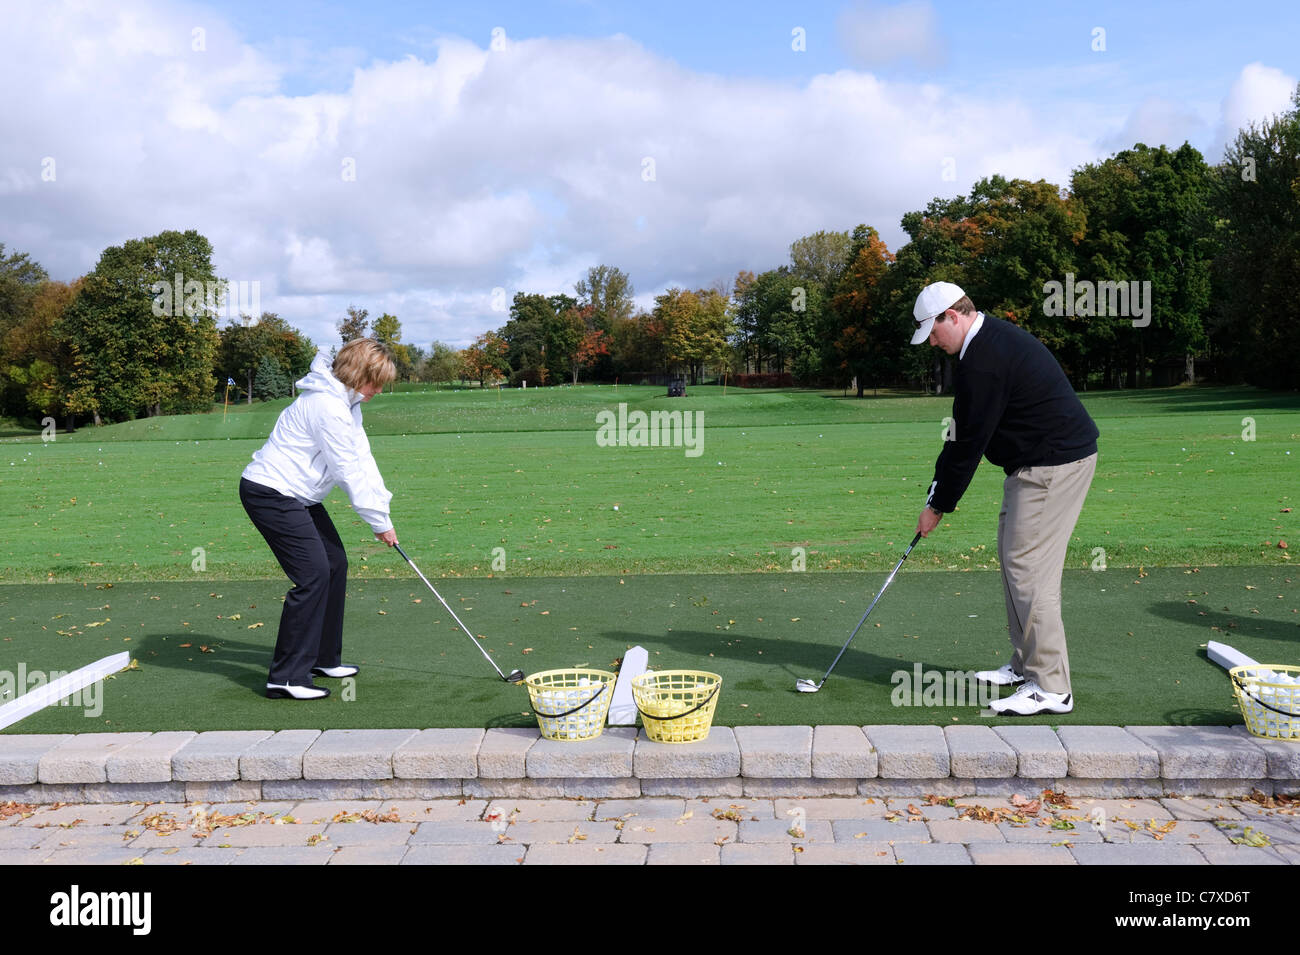 Two golfers at address position on a driving range. - Stock Image